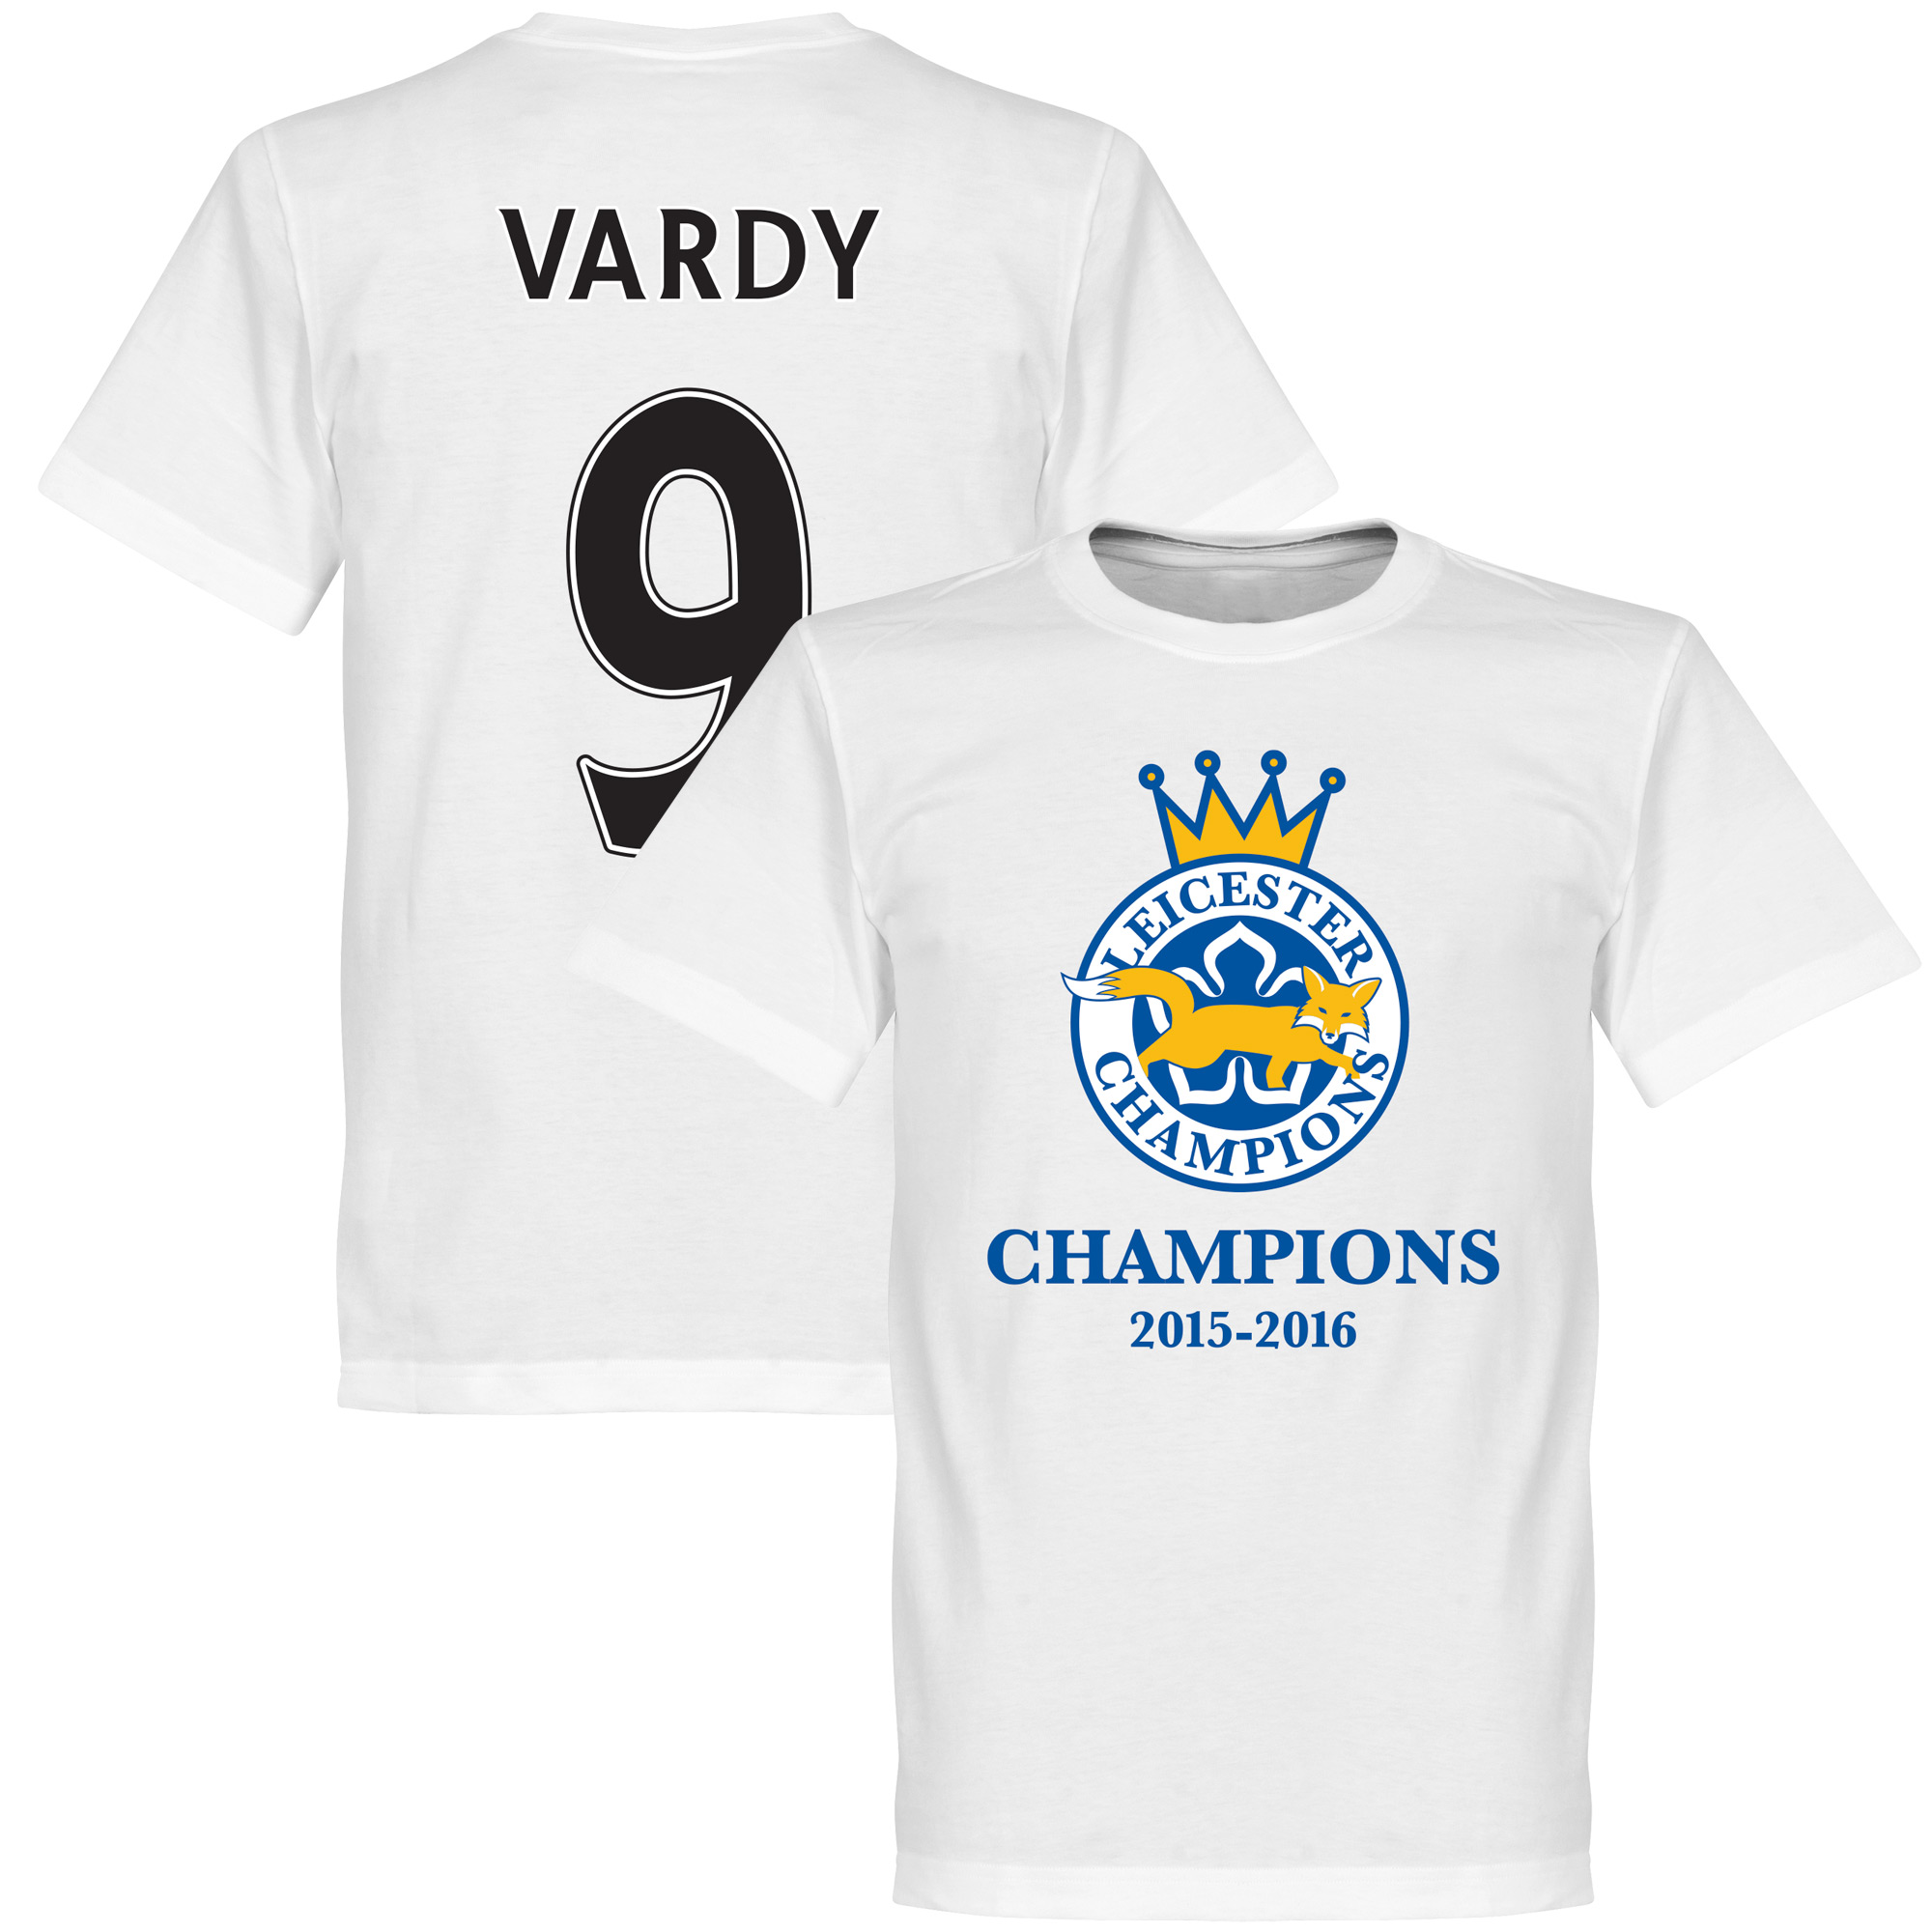 Leicester Champions Vardy Tee - White - L